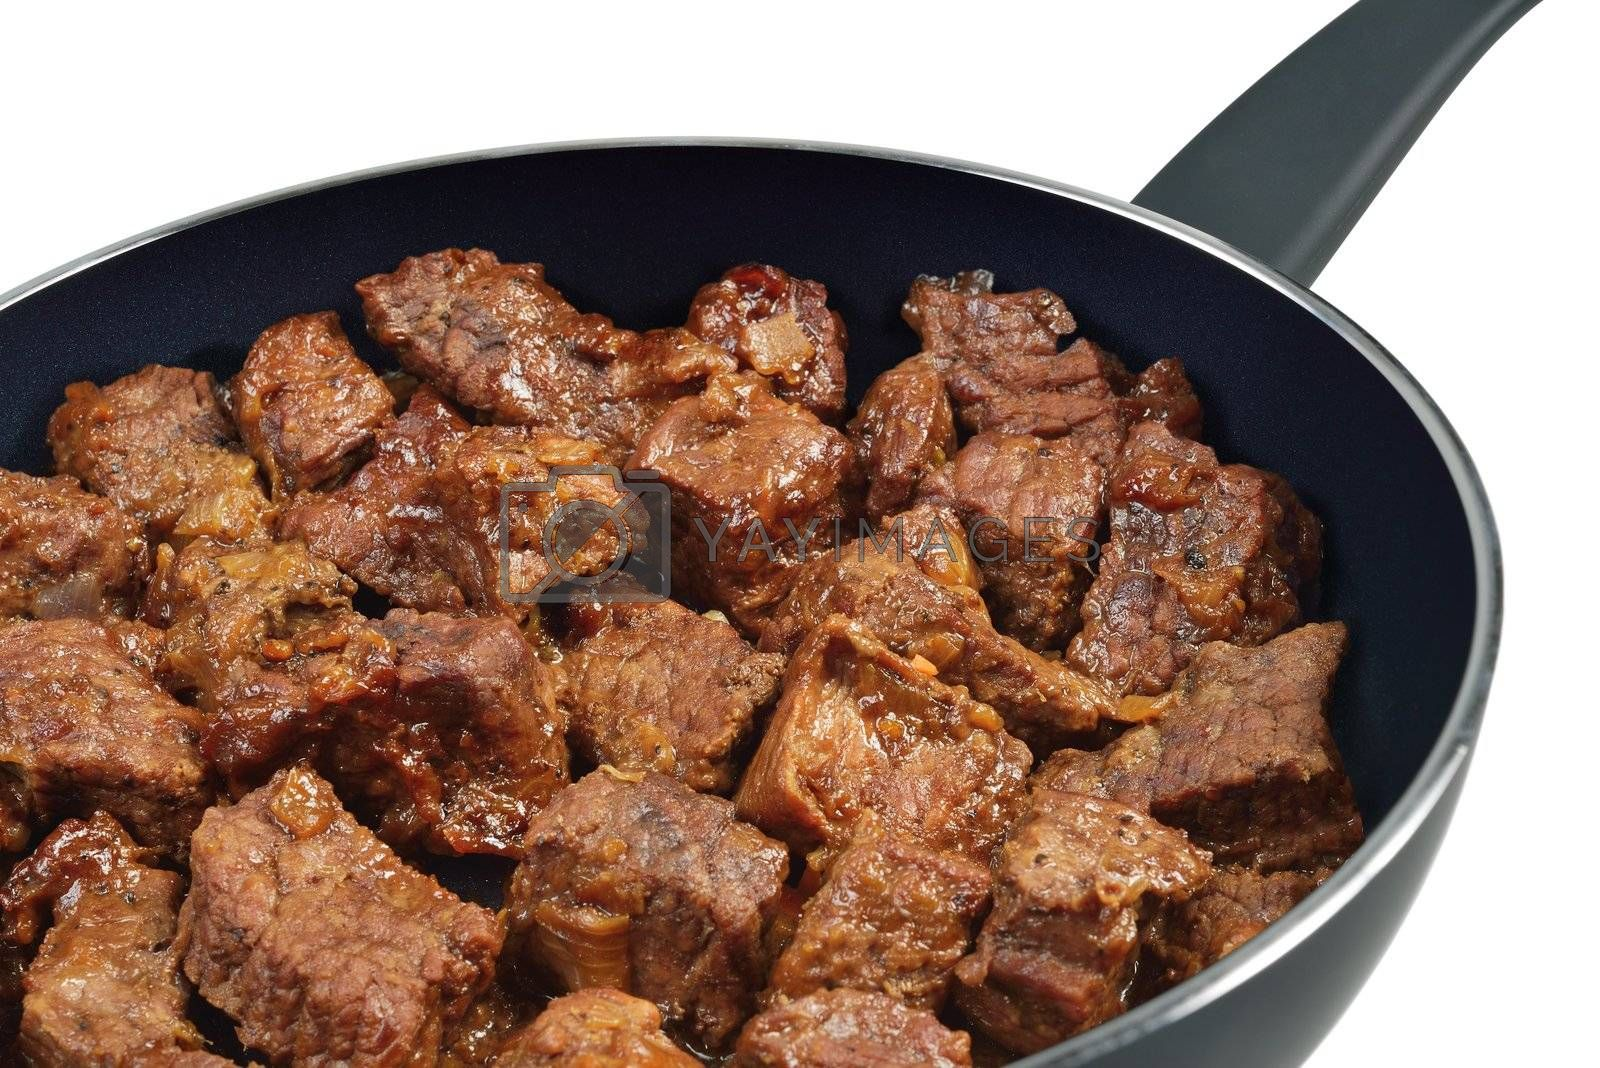 Beef stew in a frying pan. Isolated on white.